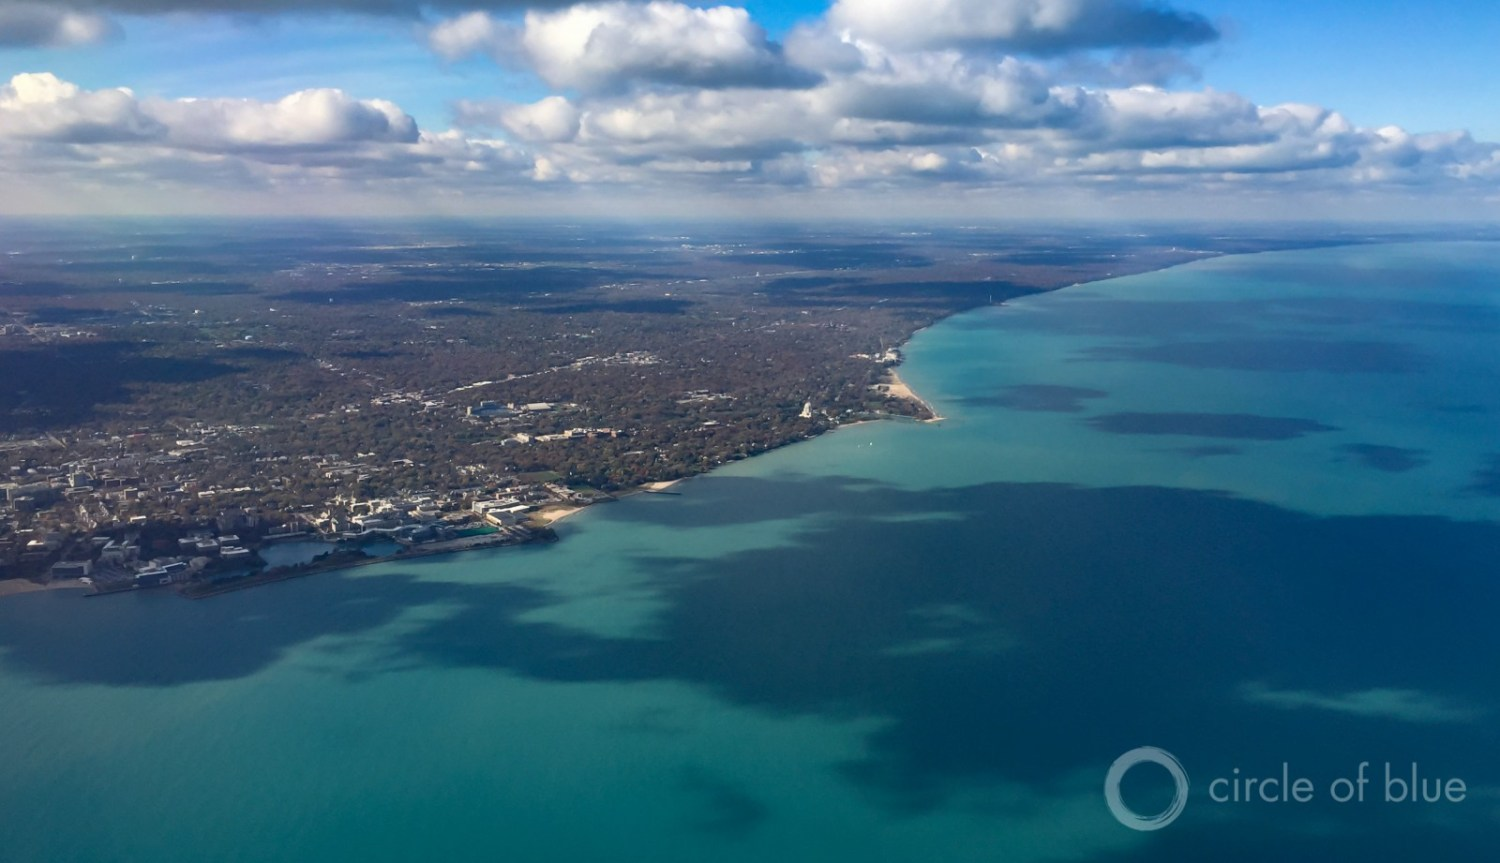 The city of Waukesha, Wisconsin, located just outside the Great Lakes Basin, is asking to withdraw water from Lake Michigan for public supply. The request is the first major test of the binational Great Lakes Compact that bans most out-of-basin water diversions. Photo © J. Carl Ganter / Circle of Blue